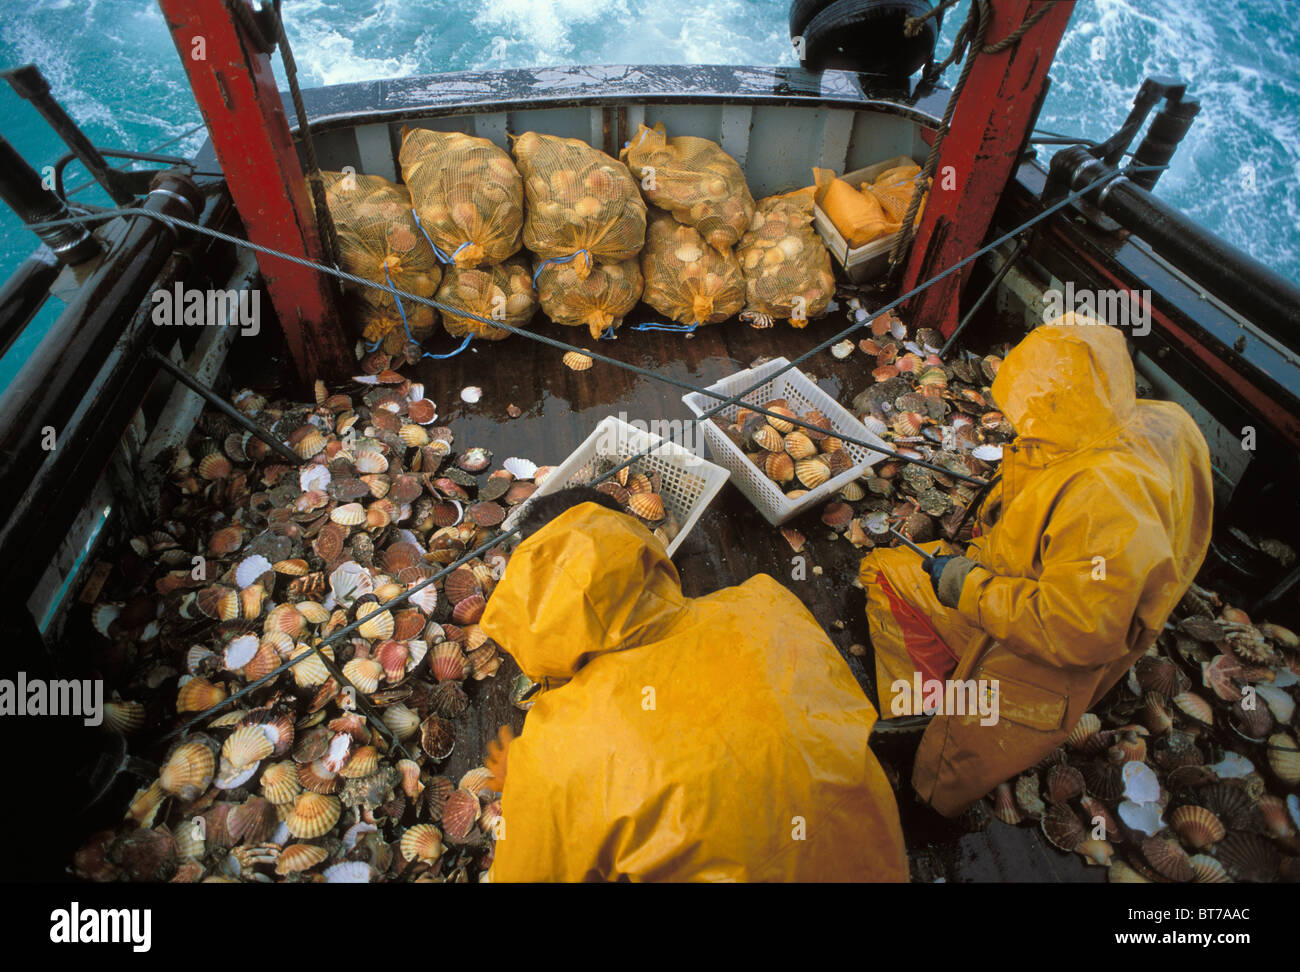 [Stock photo image of hundreds of scallops and two scallop fishers on the deck of a boat in the St Brieuc Bay.]